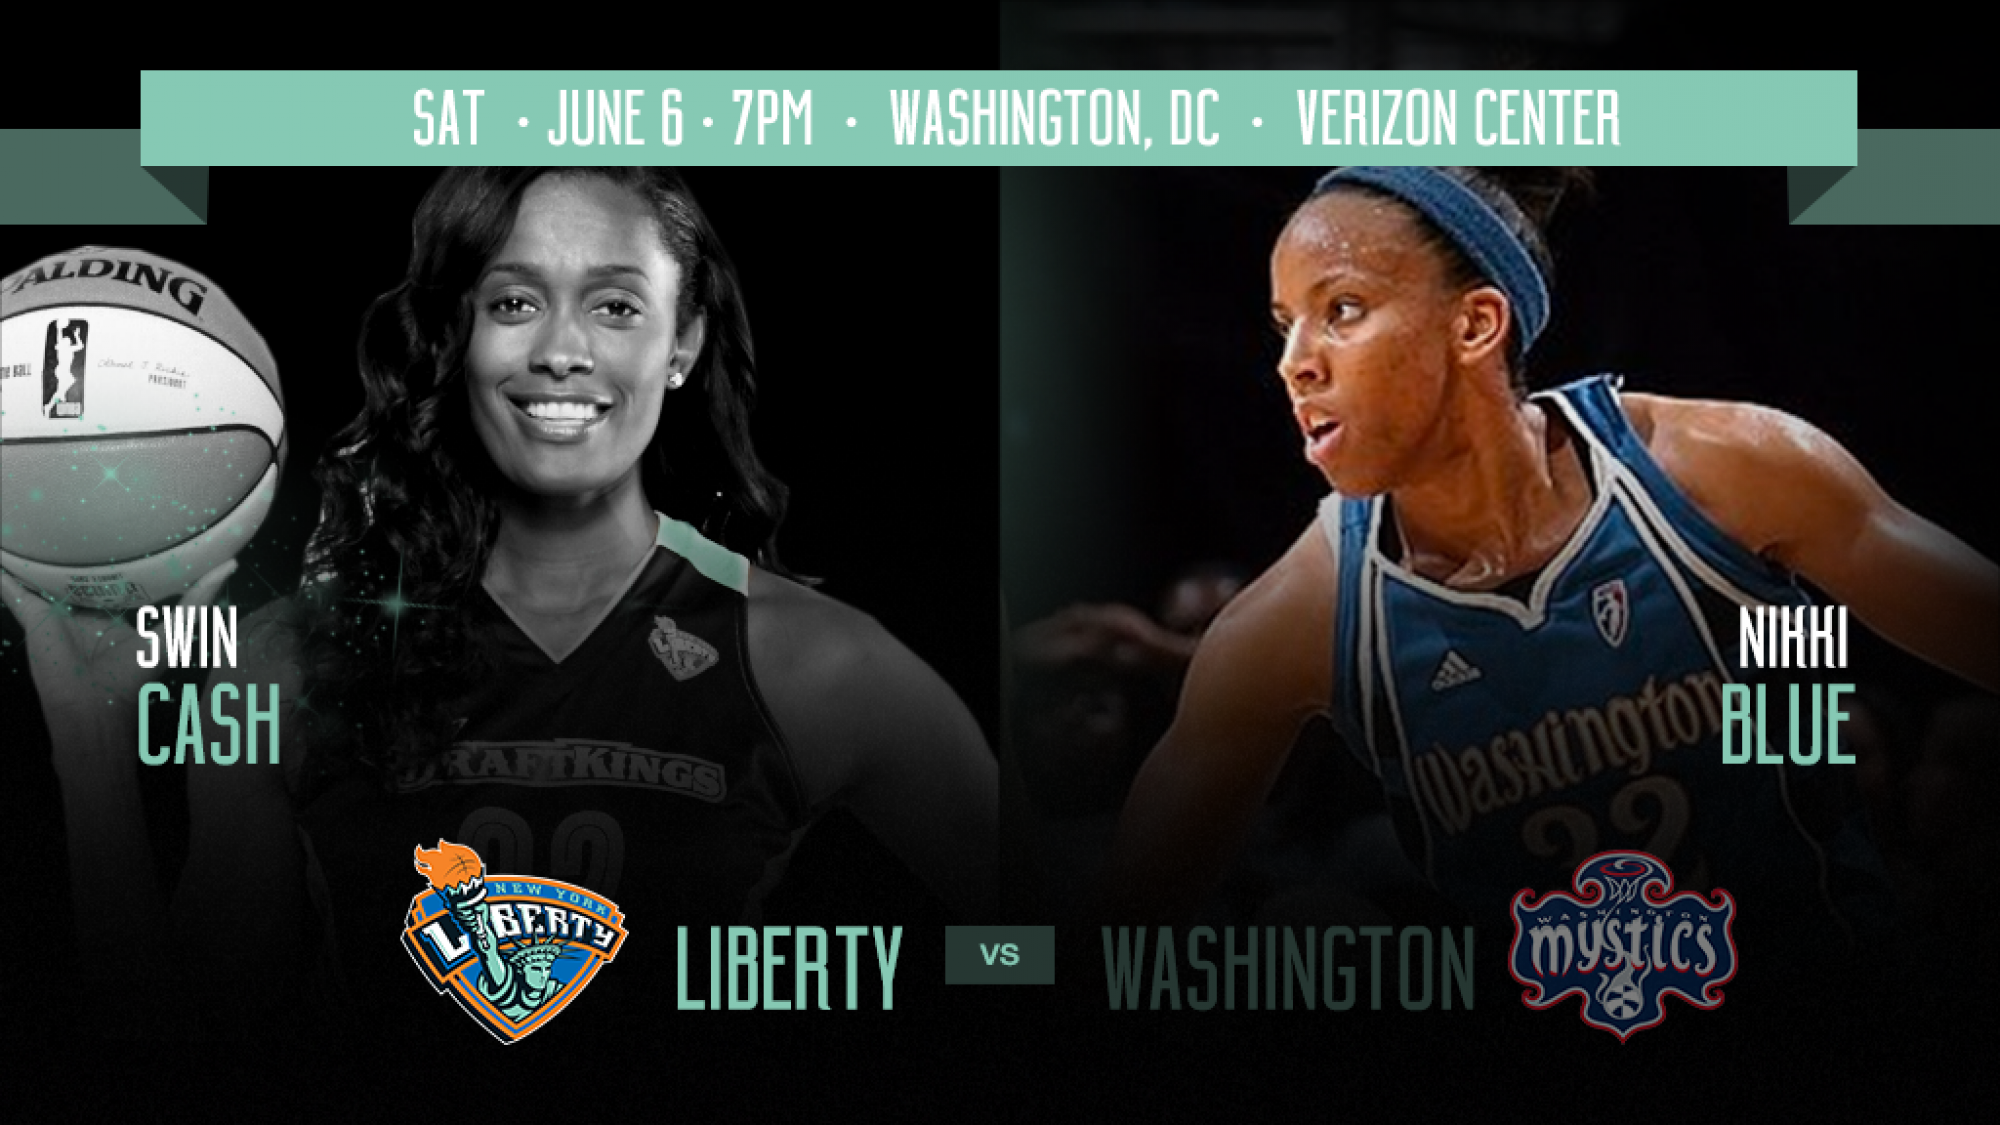 wnba_liberty_player_matchup